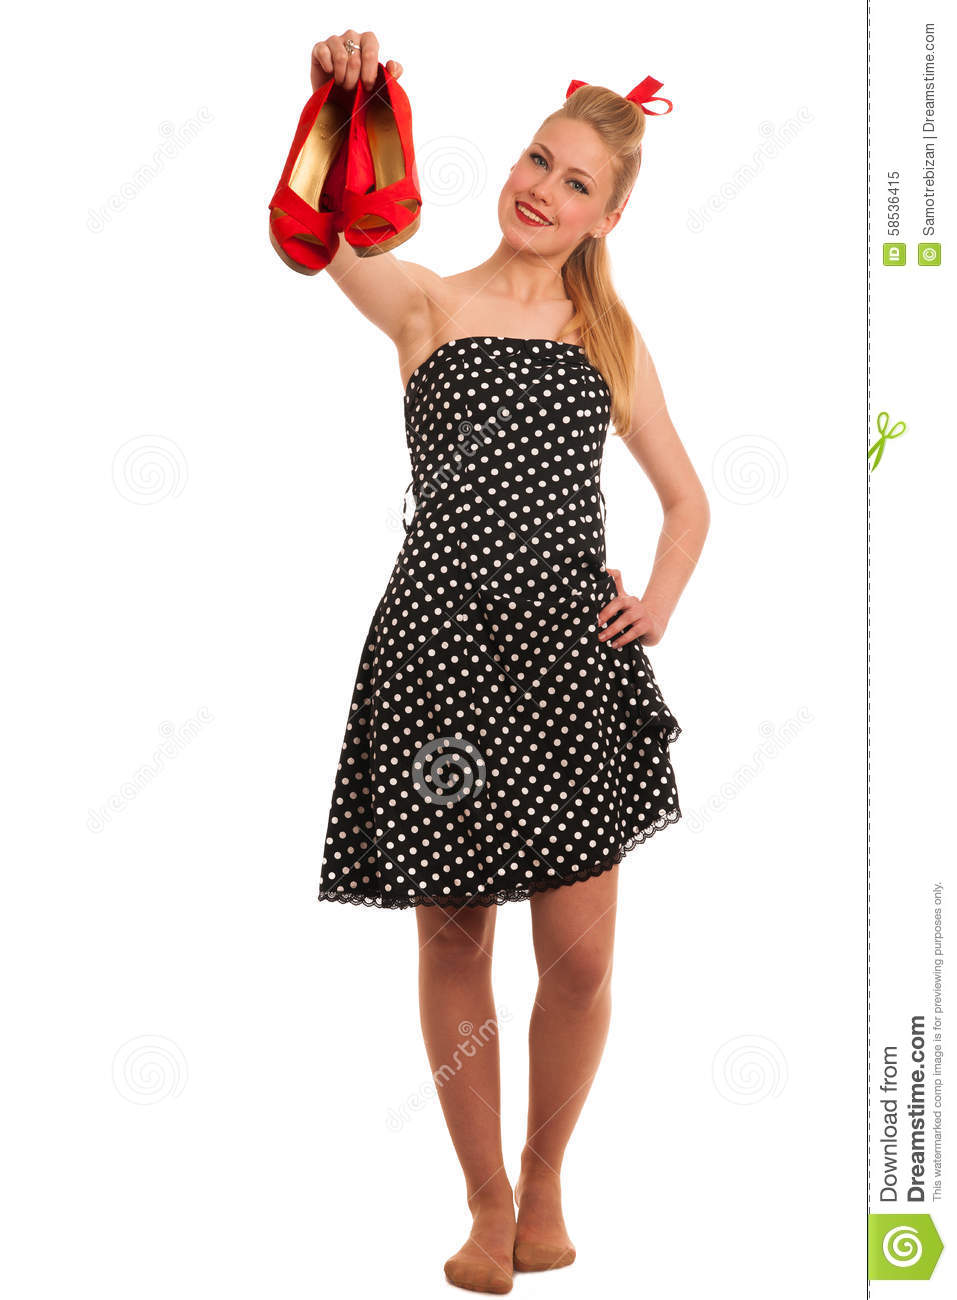 Cute Pin-Up Style Fashion Model In Retro Dress Stock Image ...